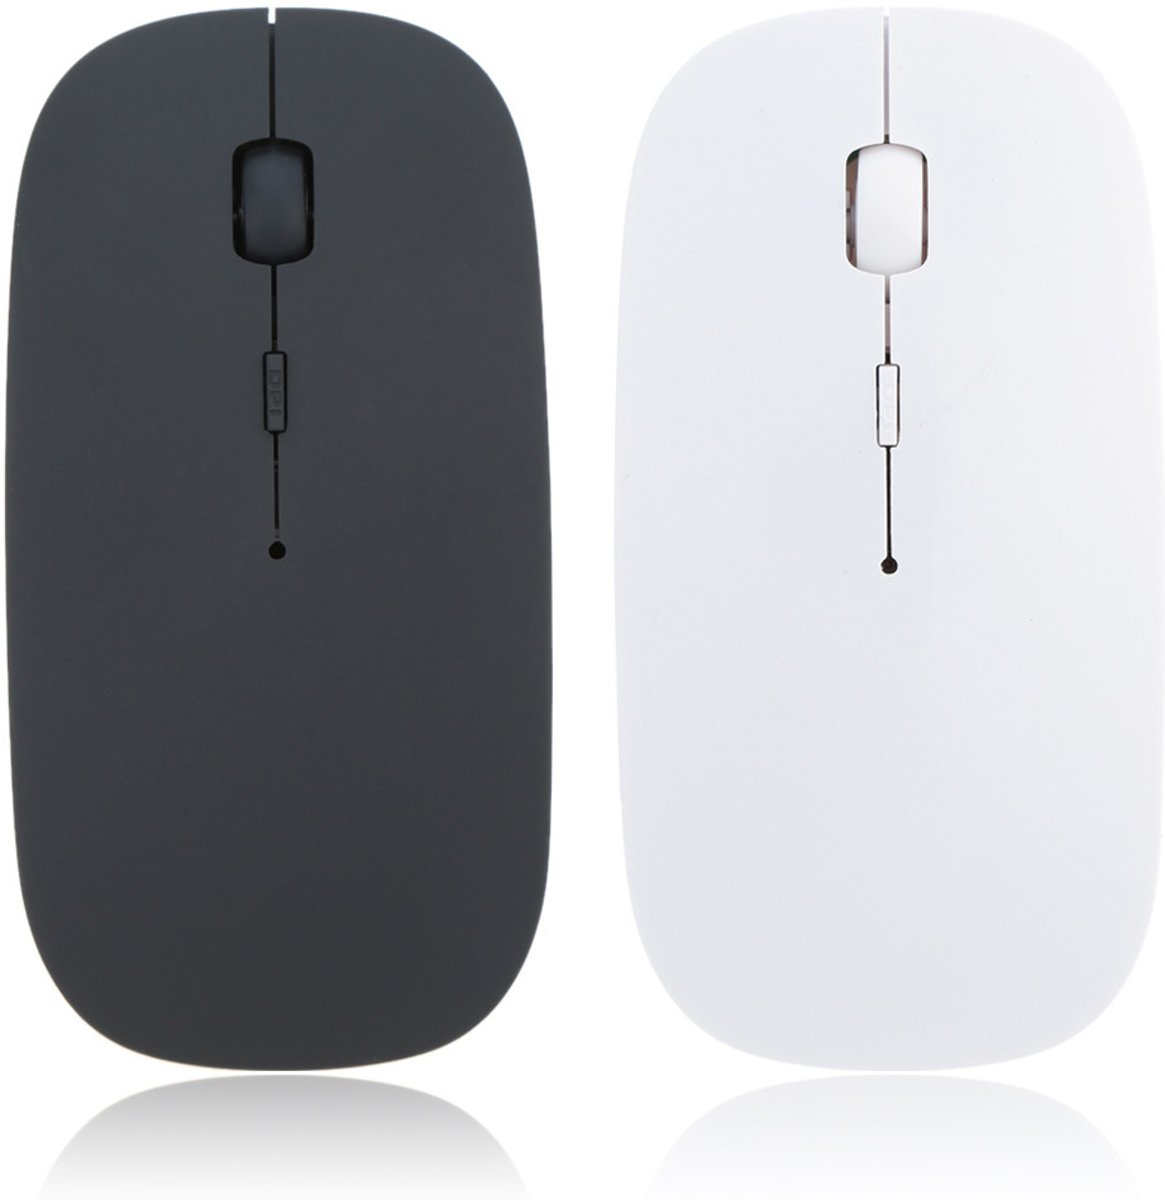 Grote Draadloze Muis Bluetooth Wireless Gaming Mouse 2.4 Ghz - Zwart of Wit